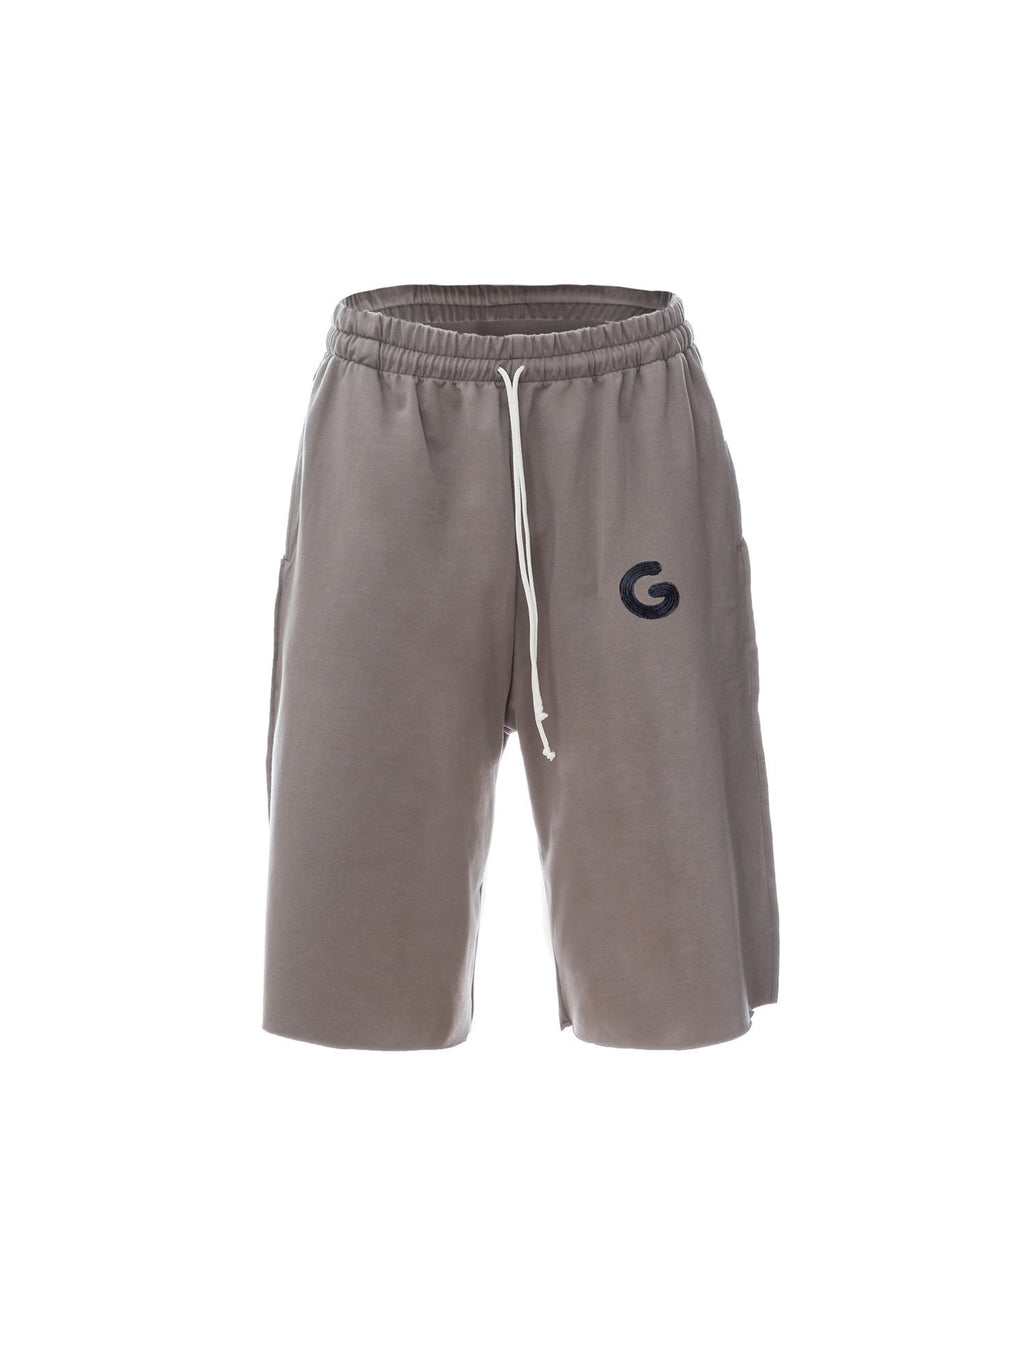 TheG Essential Shorts // neutral